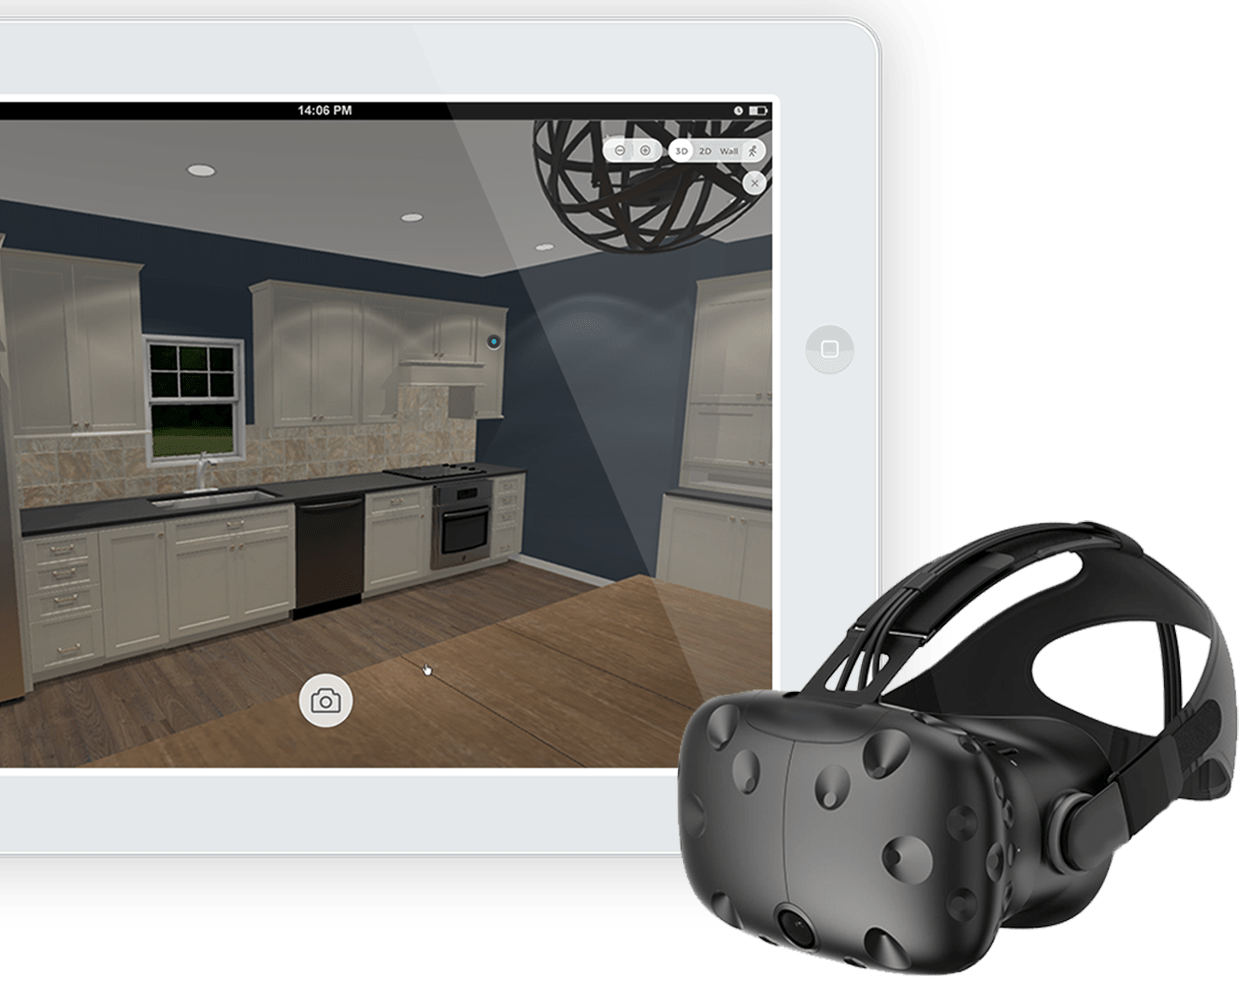 3d Raumdesigner Marxent Omnichannel 3d Content Ar And Vr For Innovative